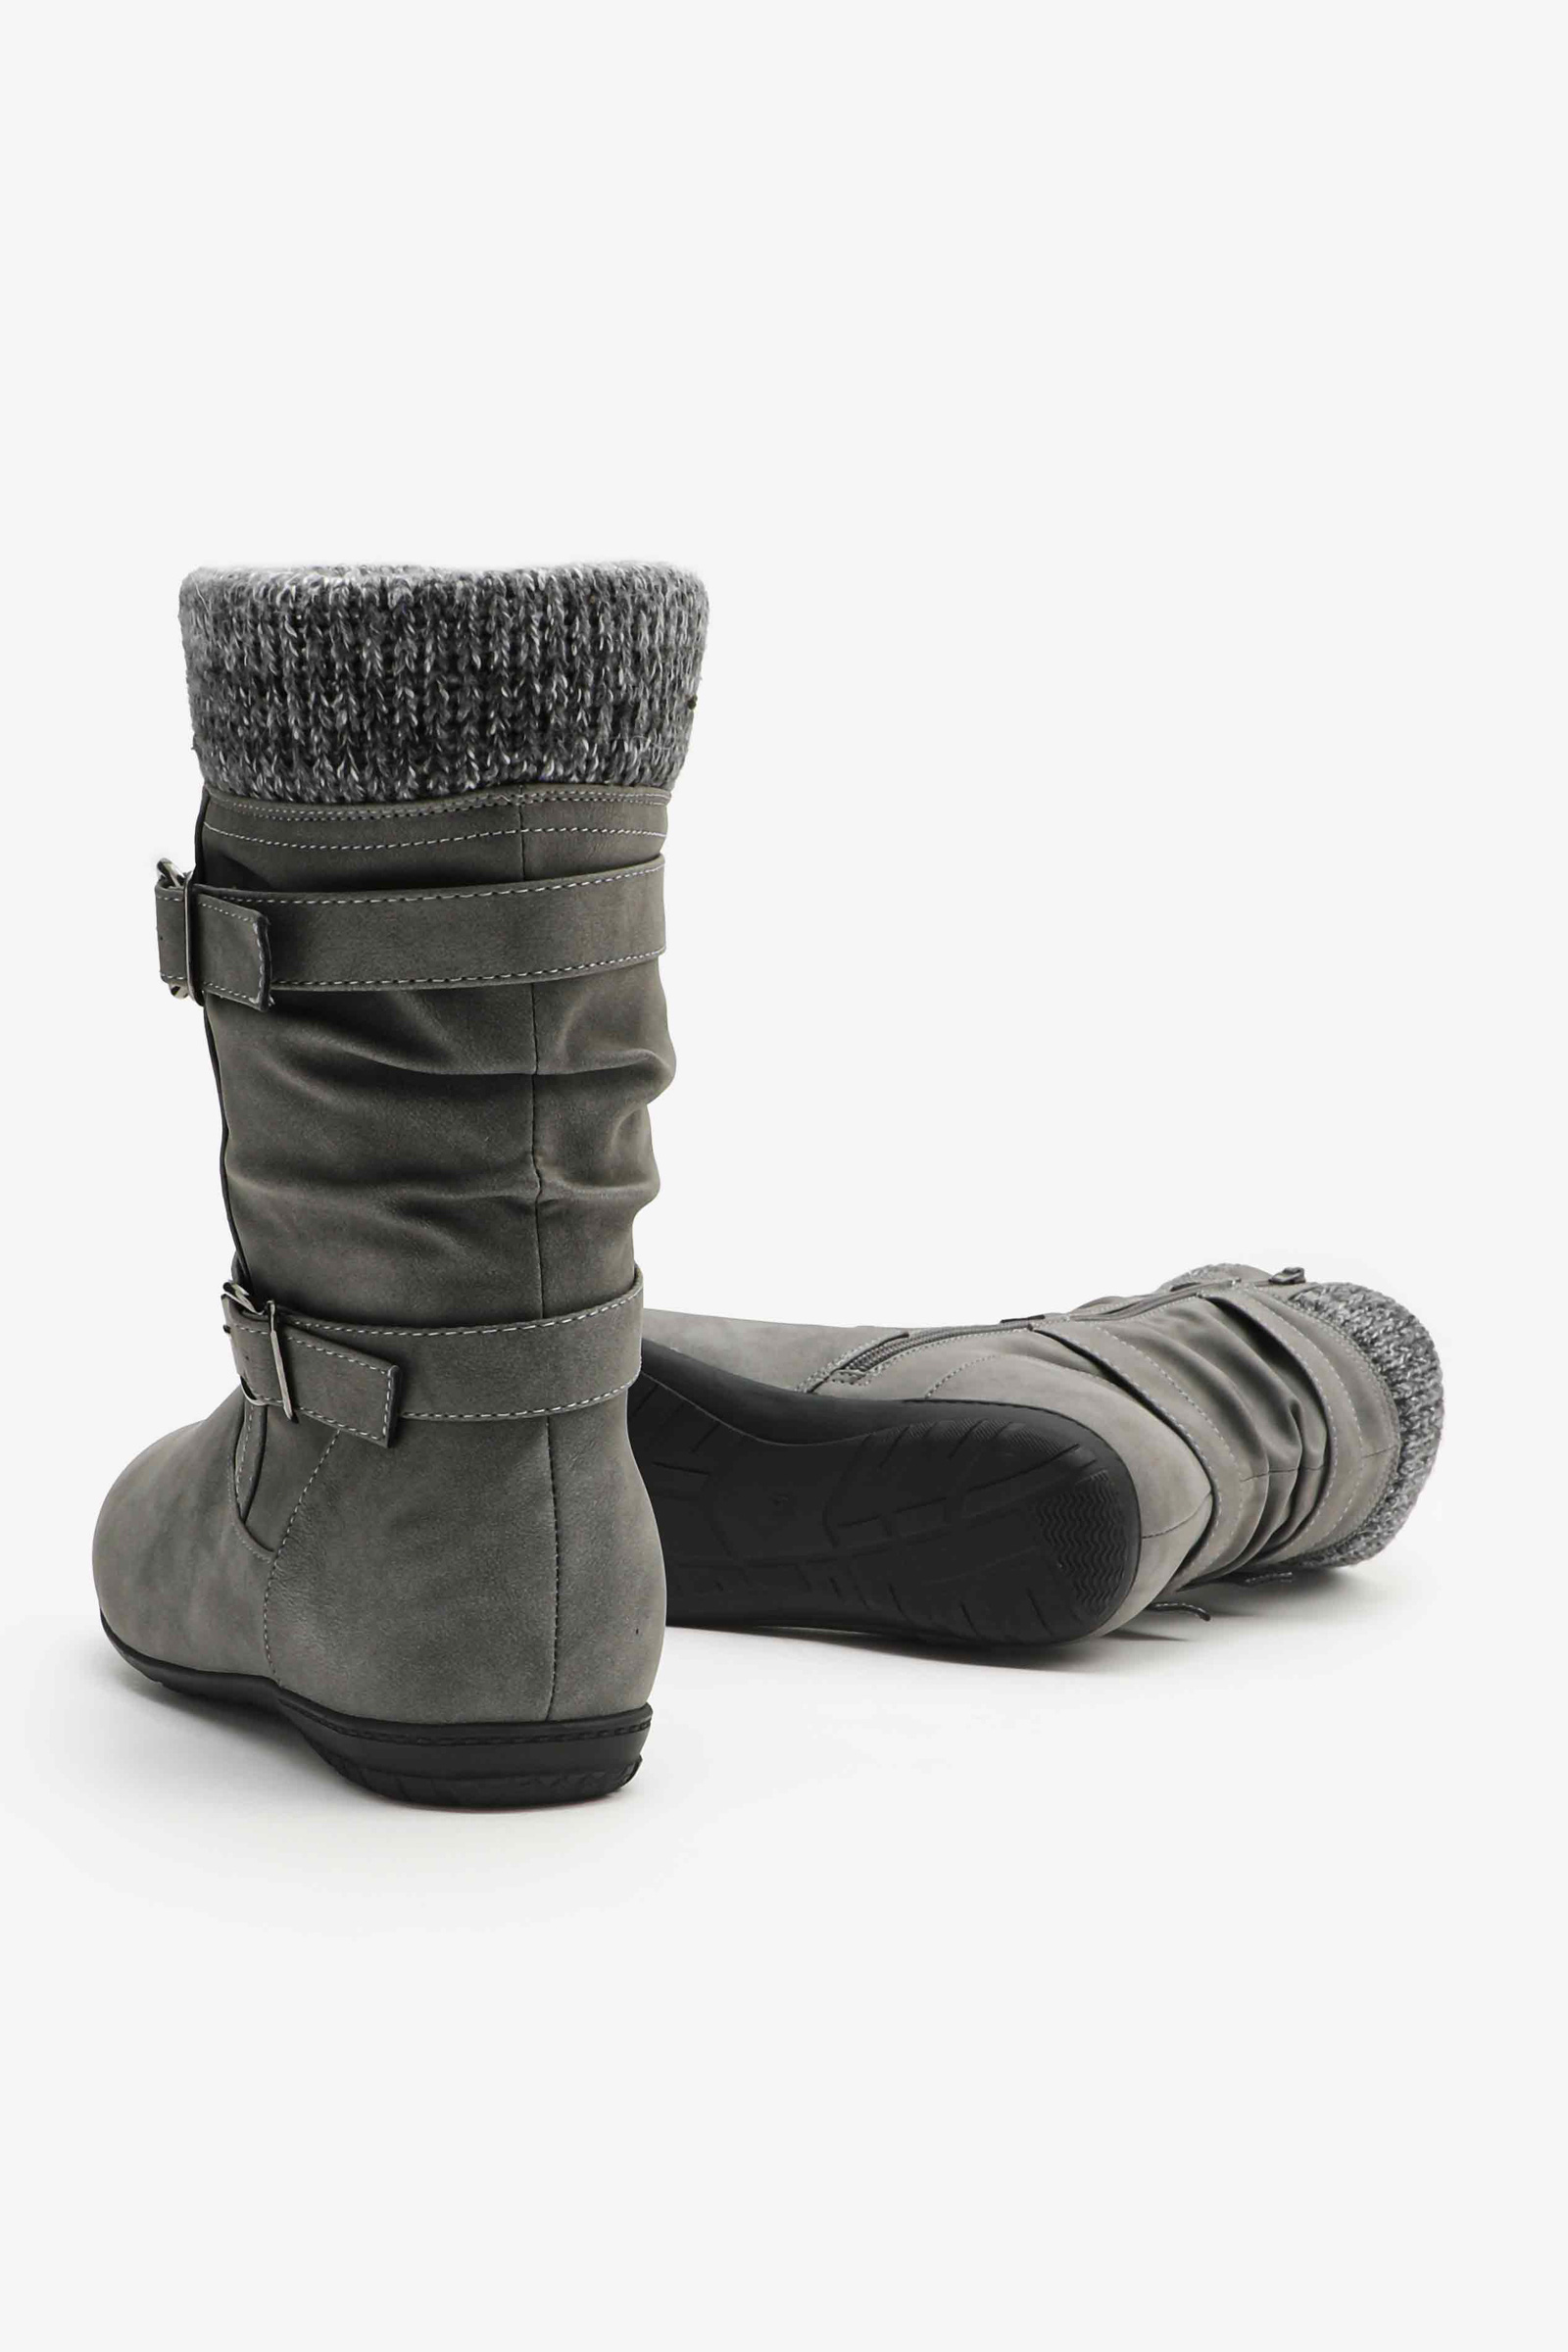 Mid-Calf Winterized Boots with Knit Collar